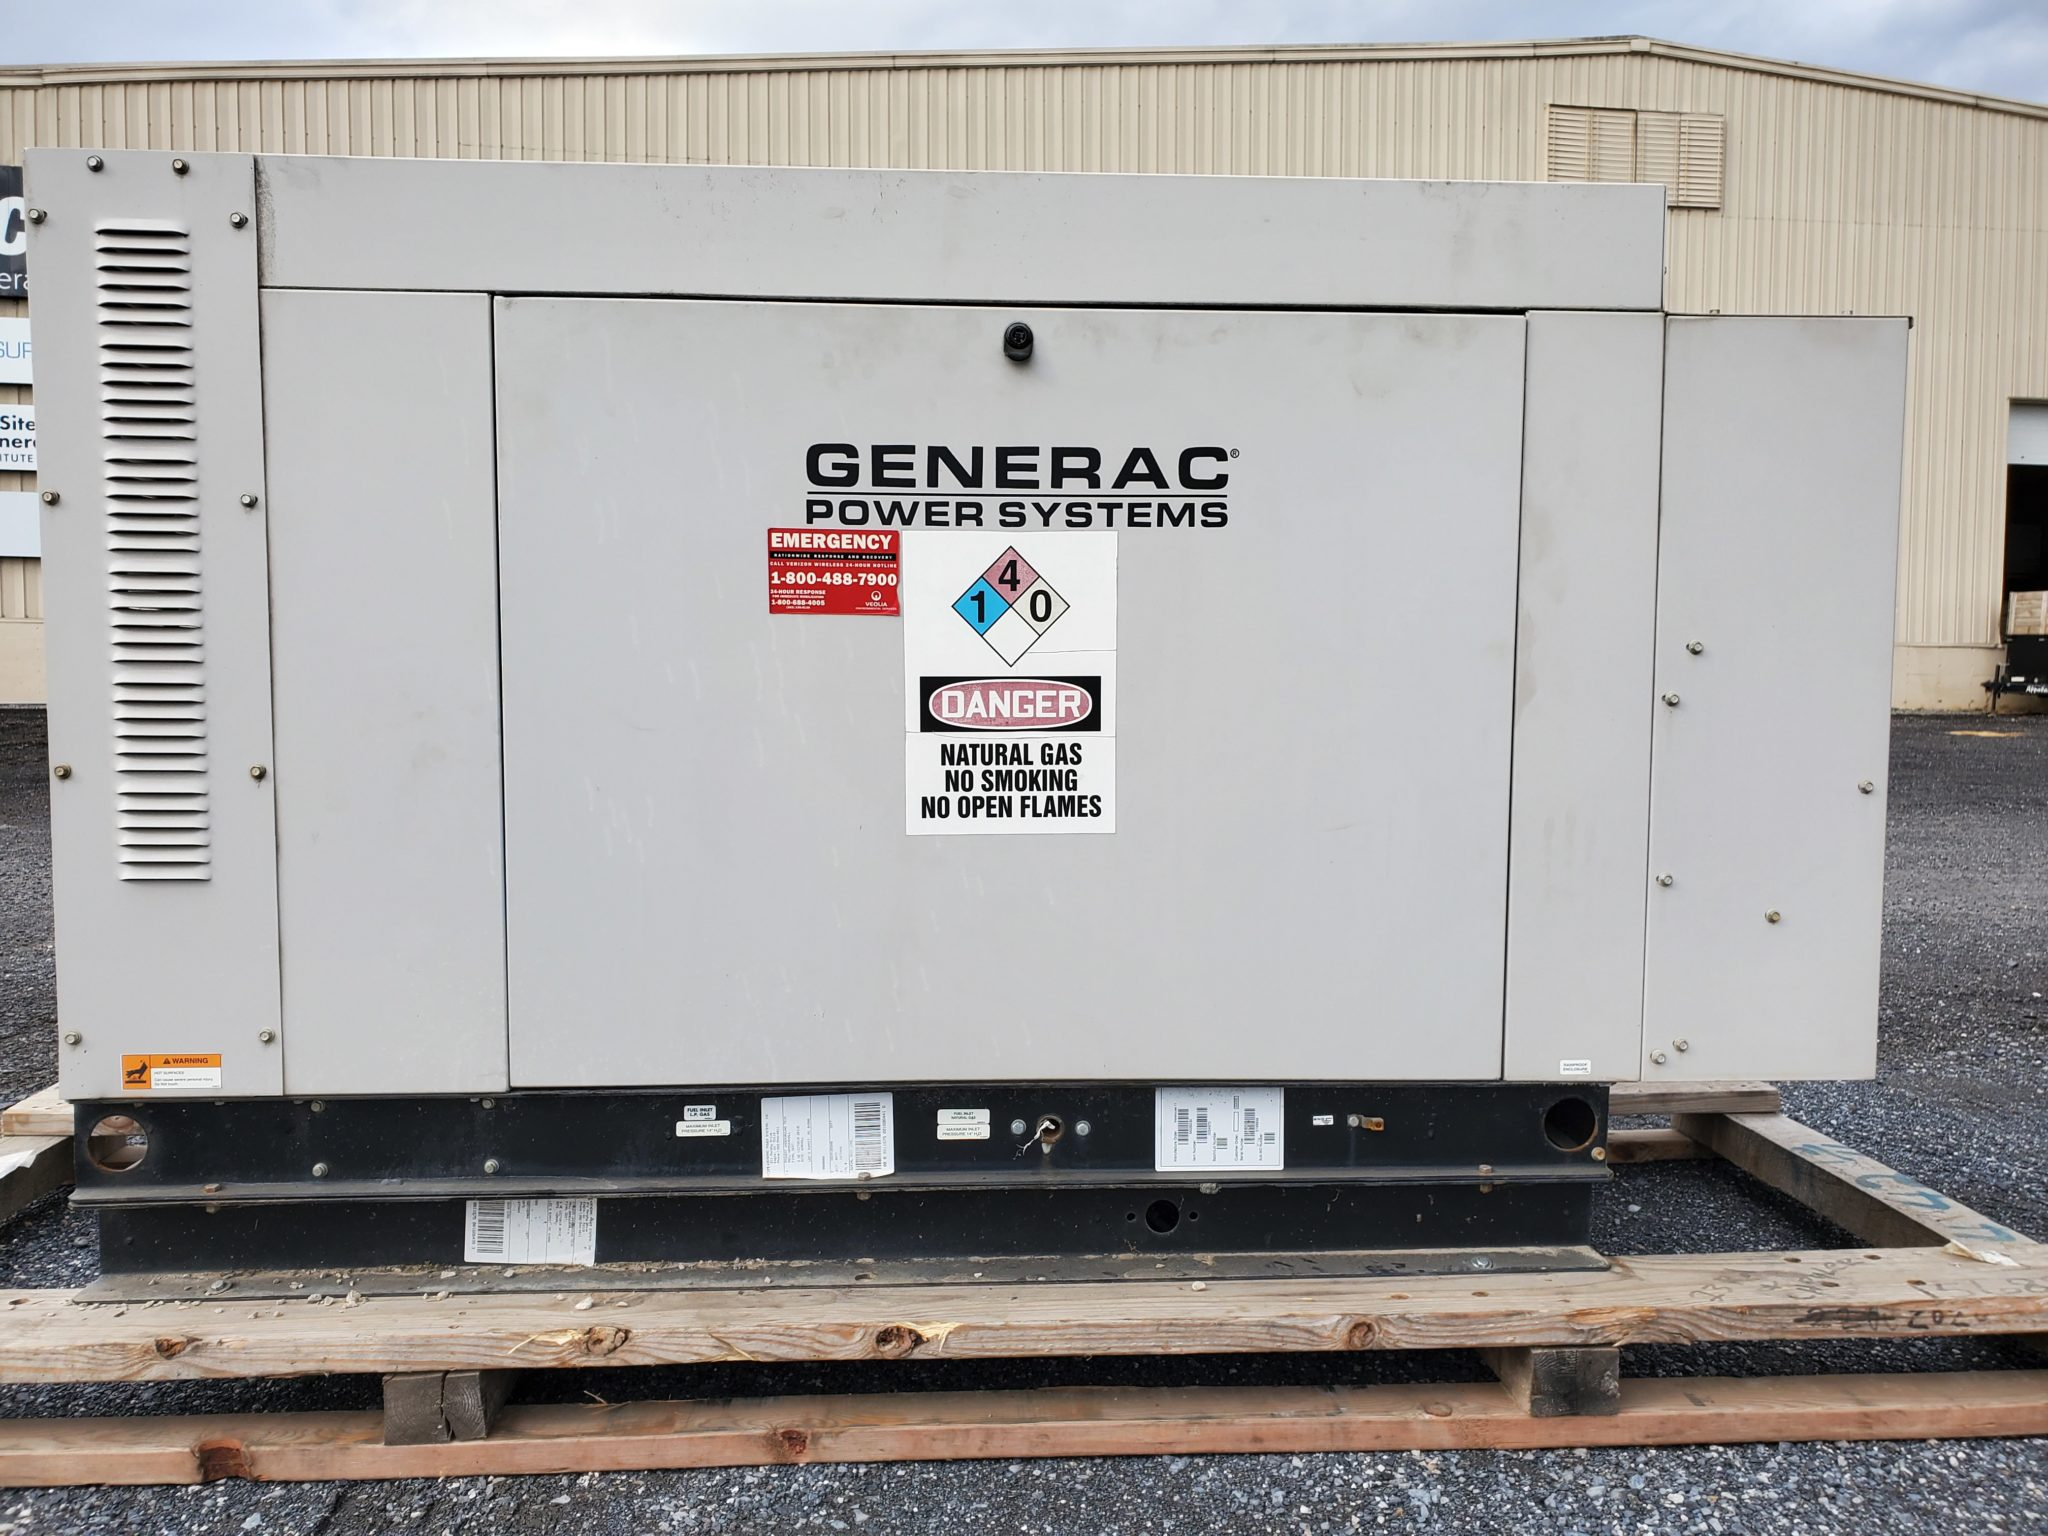 Used 30 kW Generac SG030 Natural Gas Generator – SOLD!